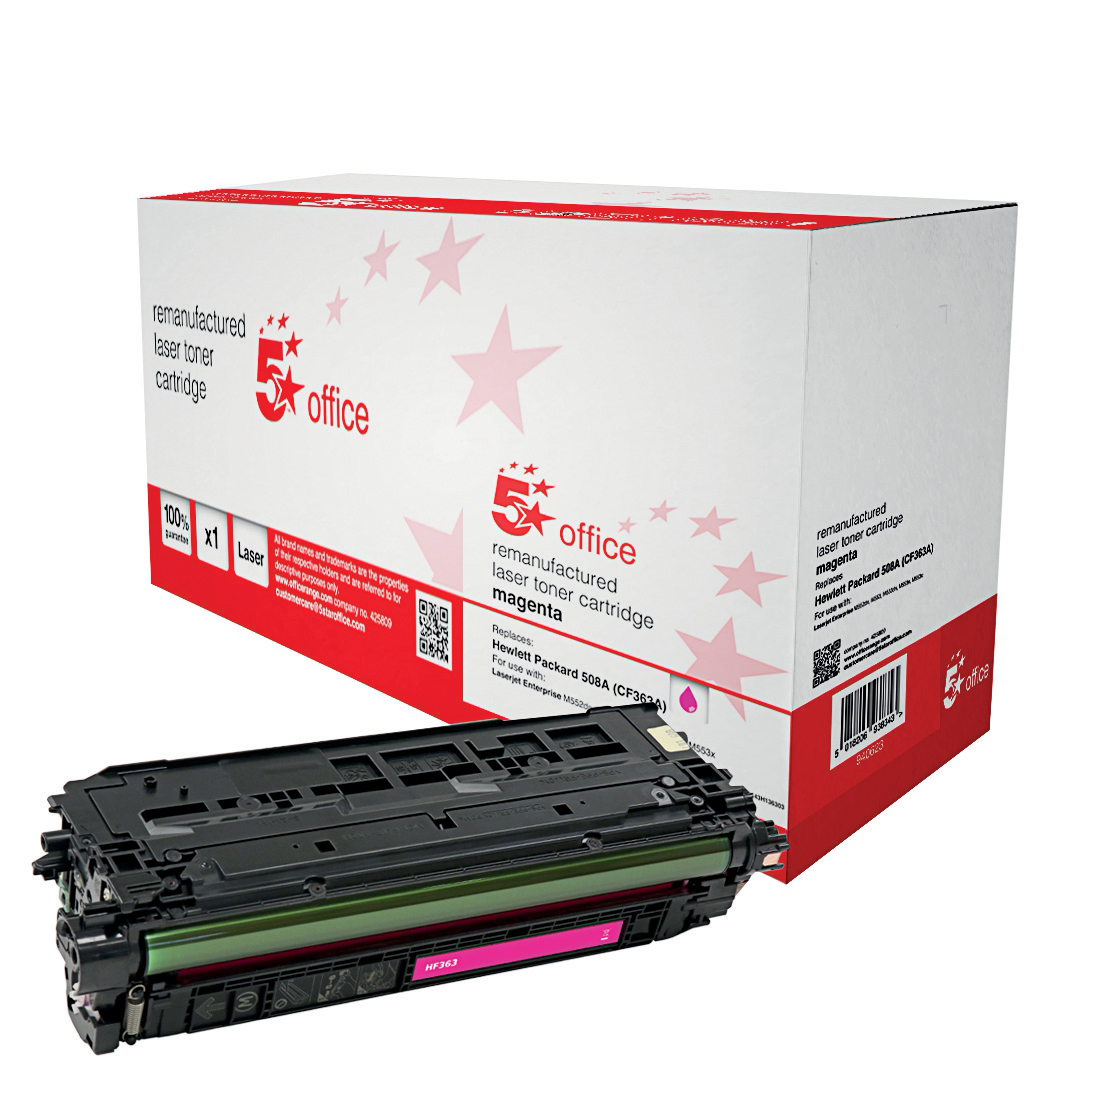 5 Star Office Remanufactured Laser Toner Cartridge Page Life 5000pp Magenta [HP 508A CF363A Alternative]